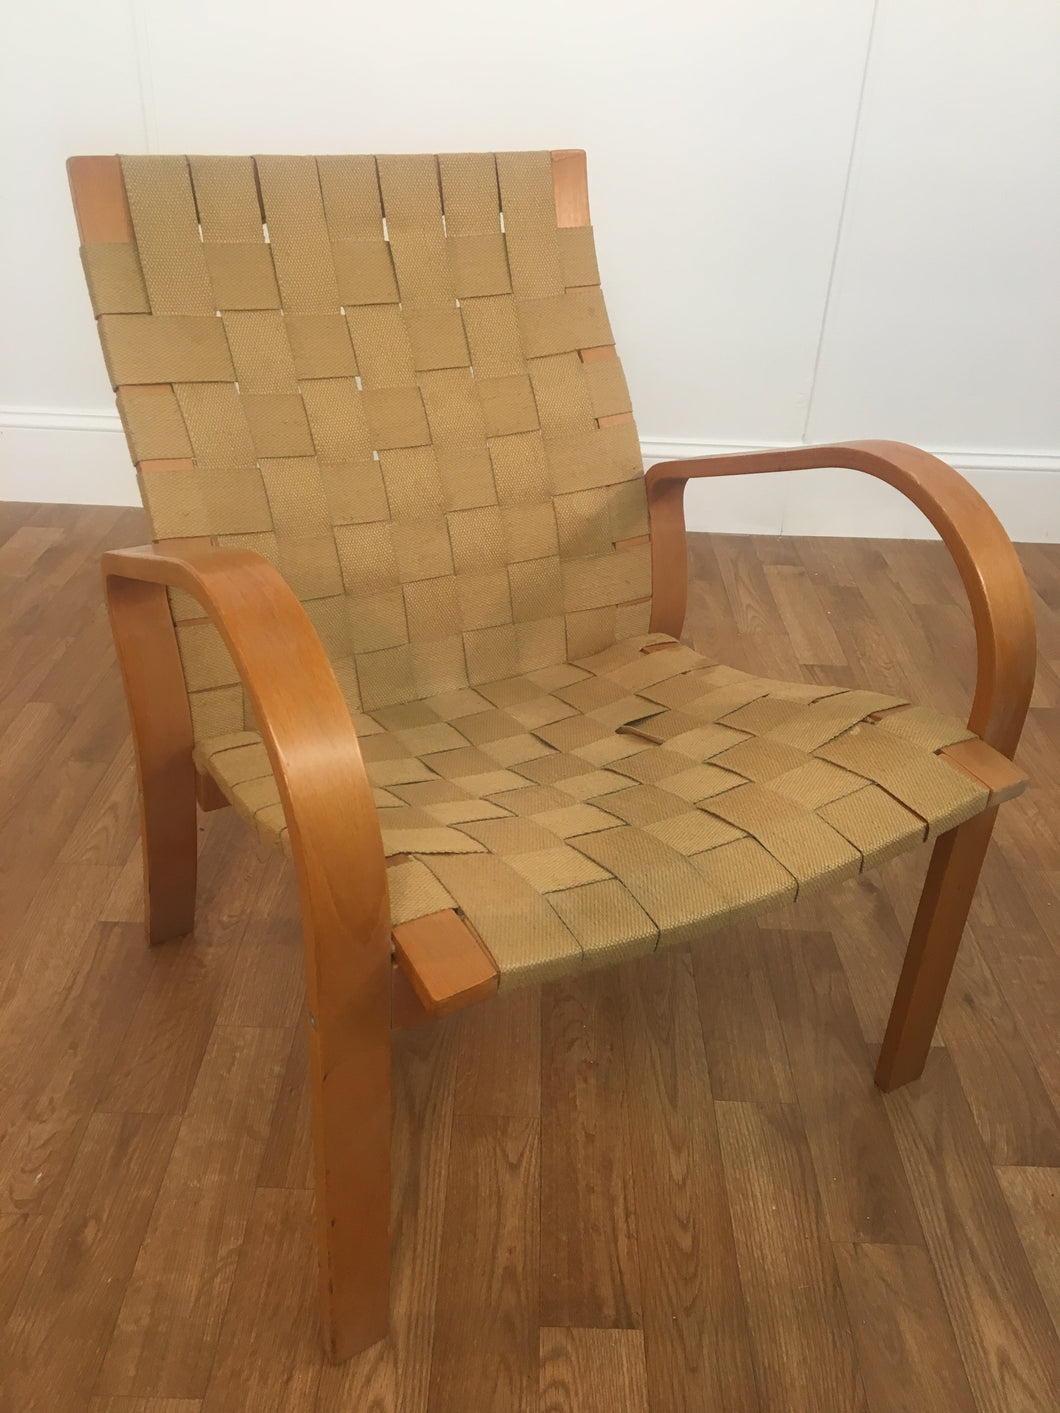 WOVEN WOOD STRAP CHAIR